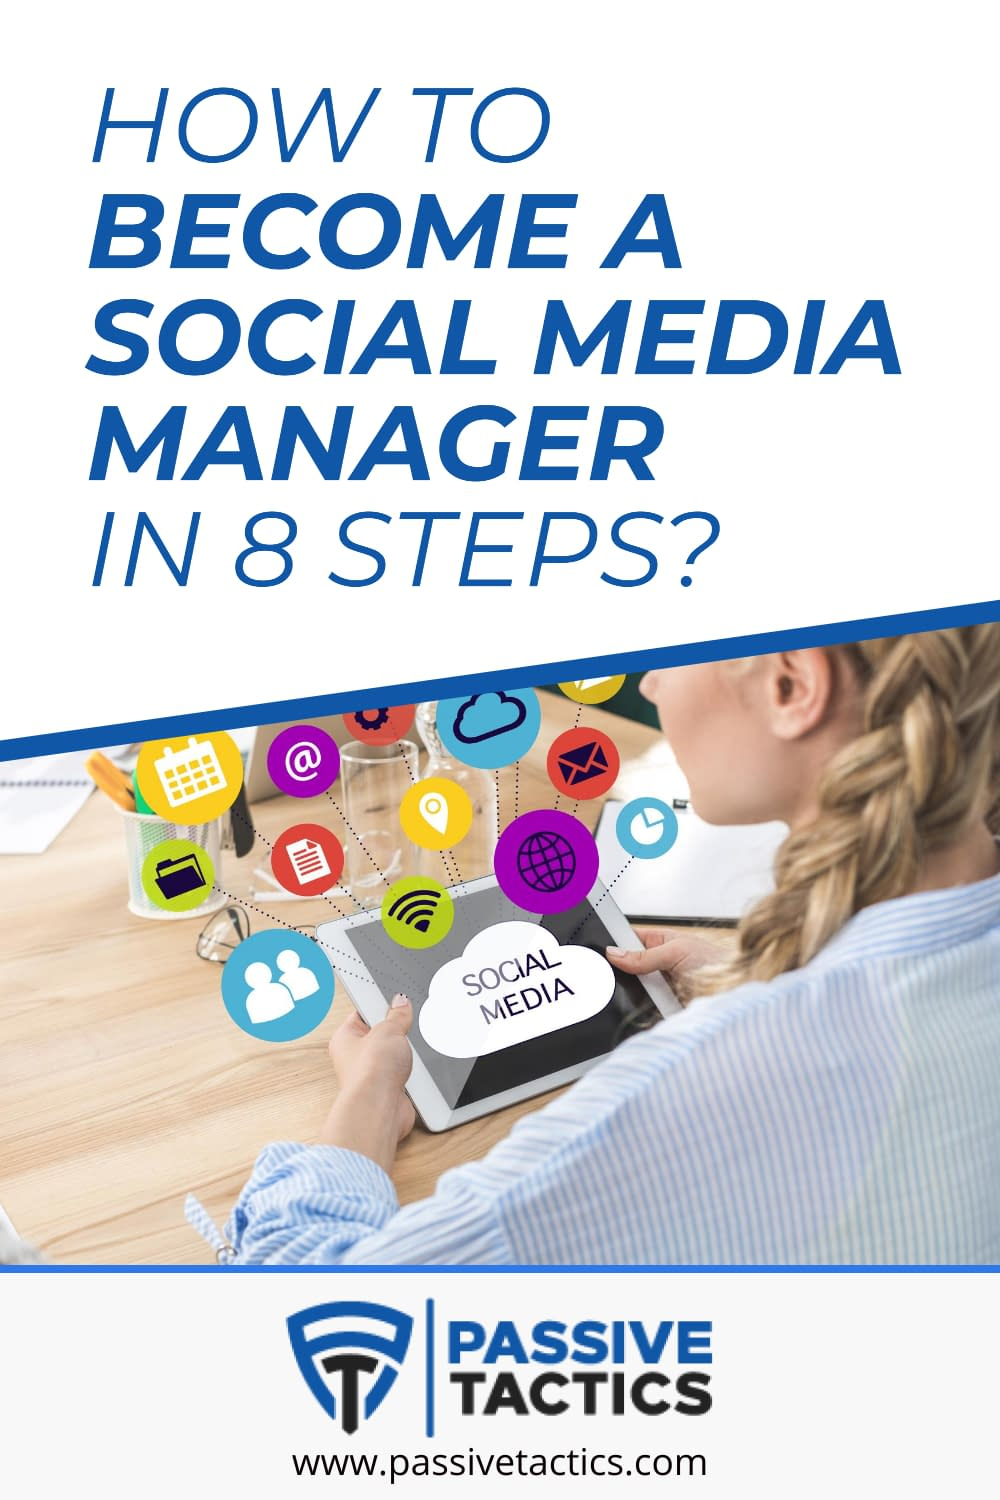 How To Become A Social Media Manager In 8 Steps?